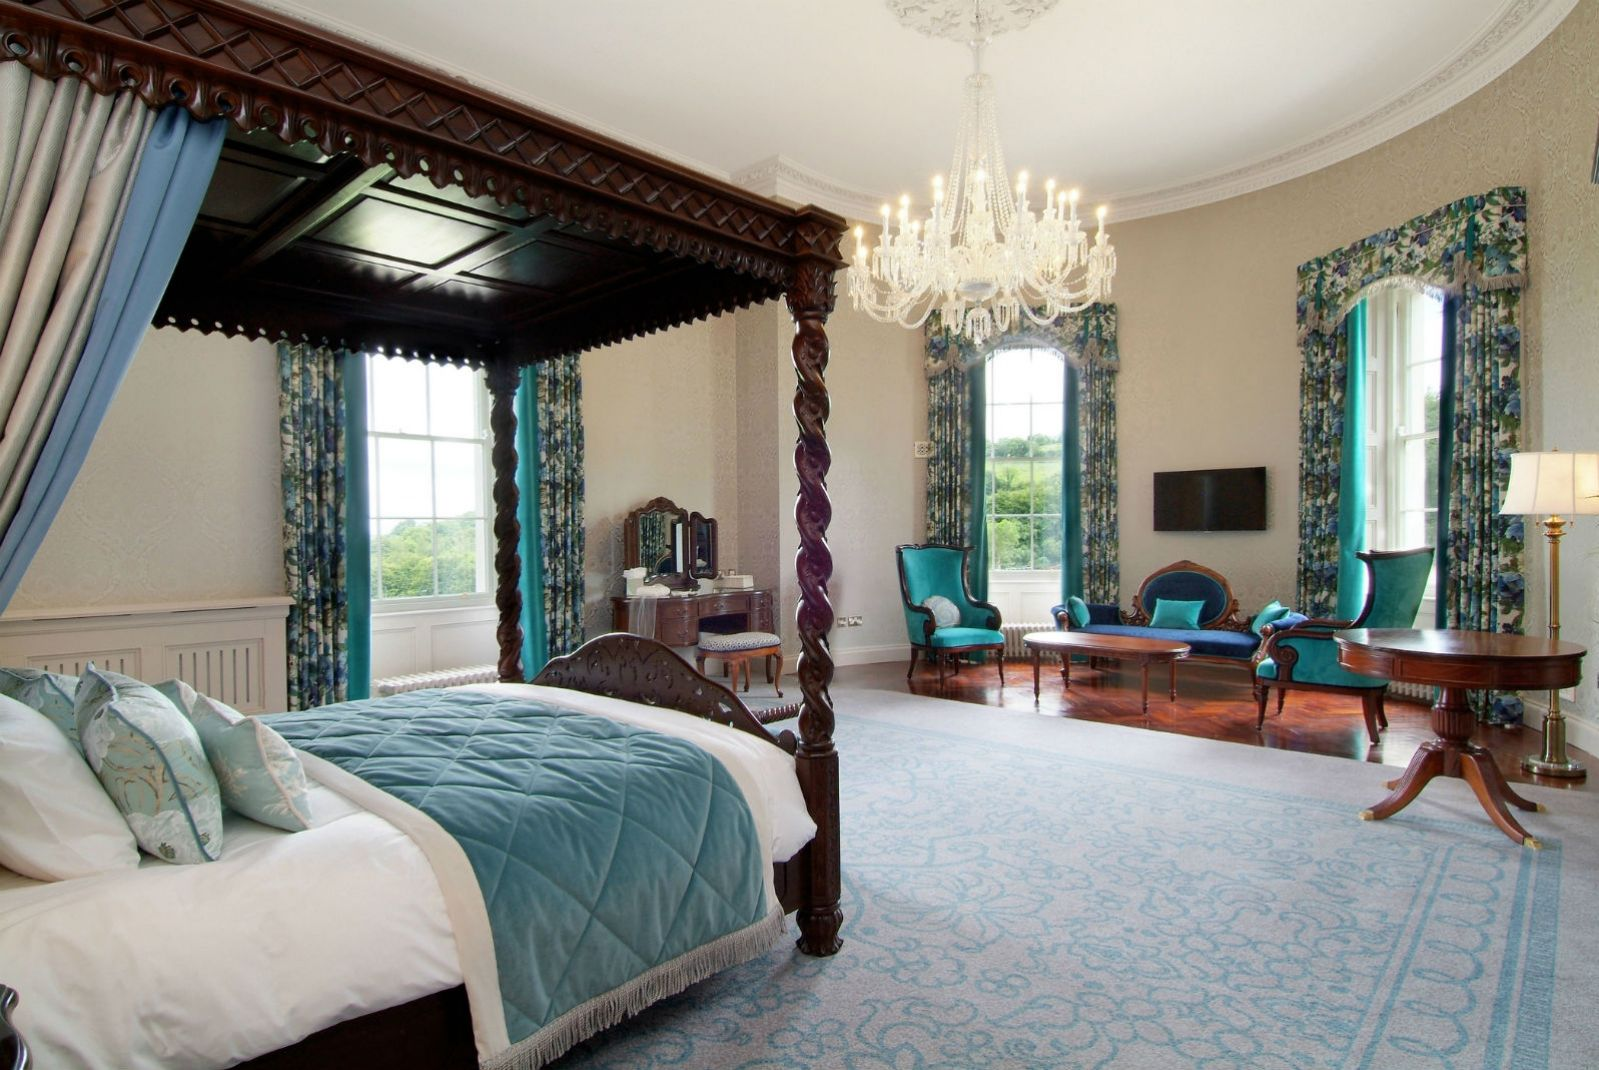 Bedroom Suite at Rockhill House